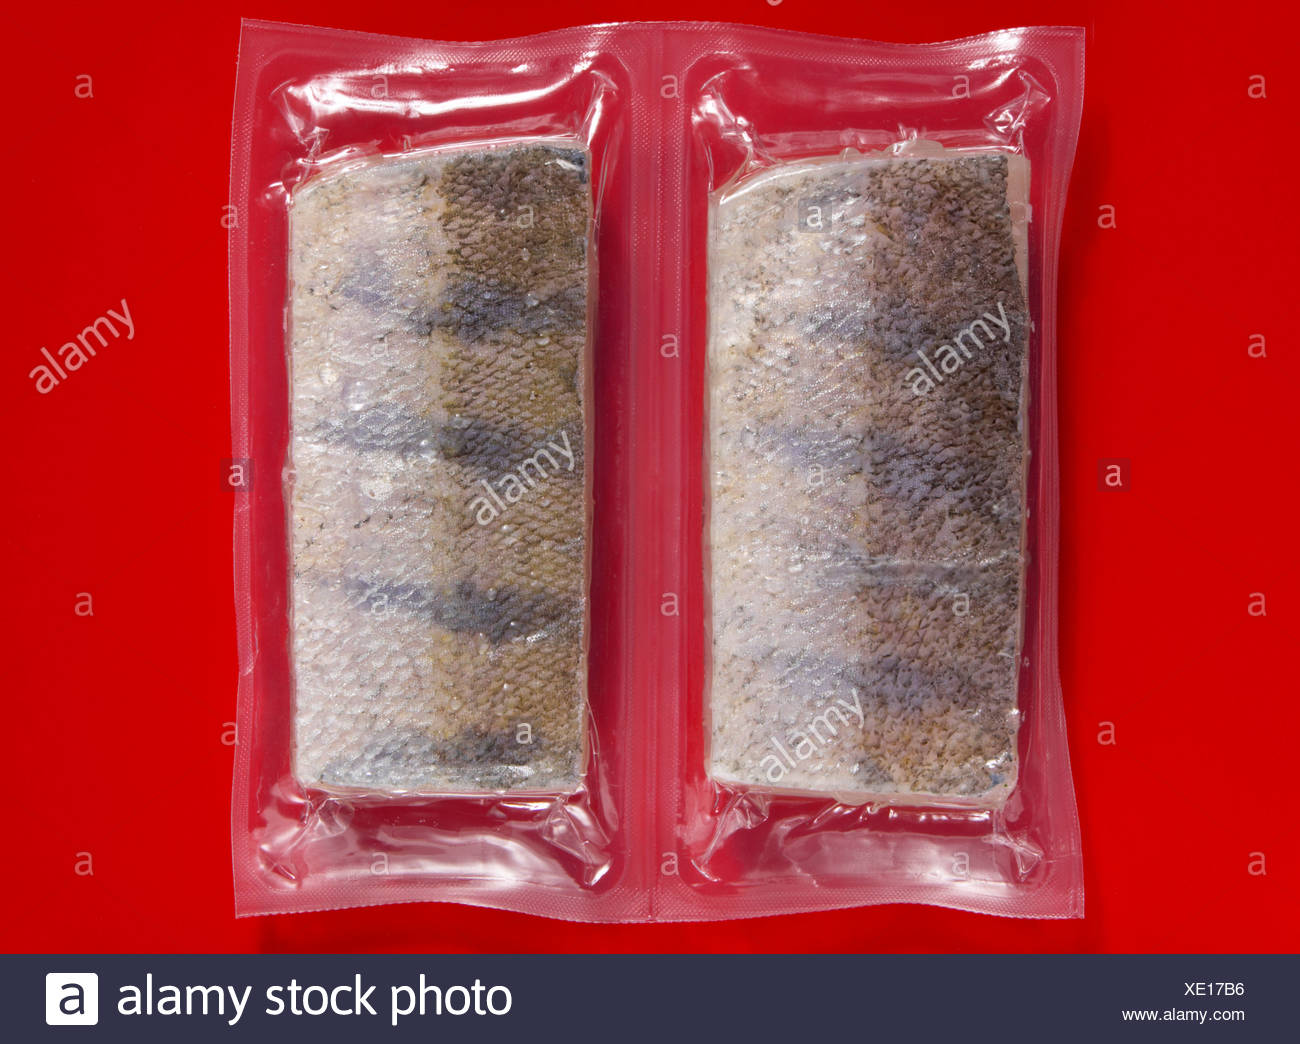 Frozen Mackerel vaccuum packed, elevated view - Stock Image